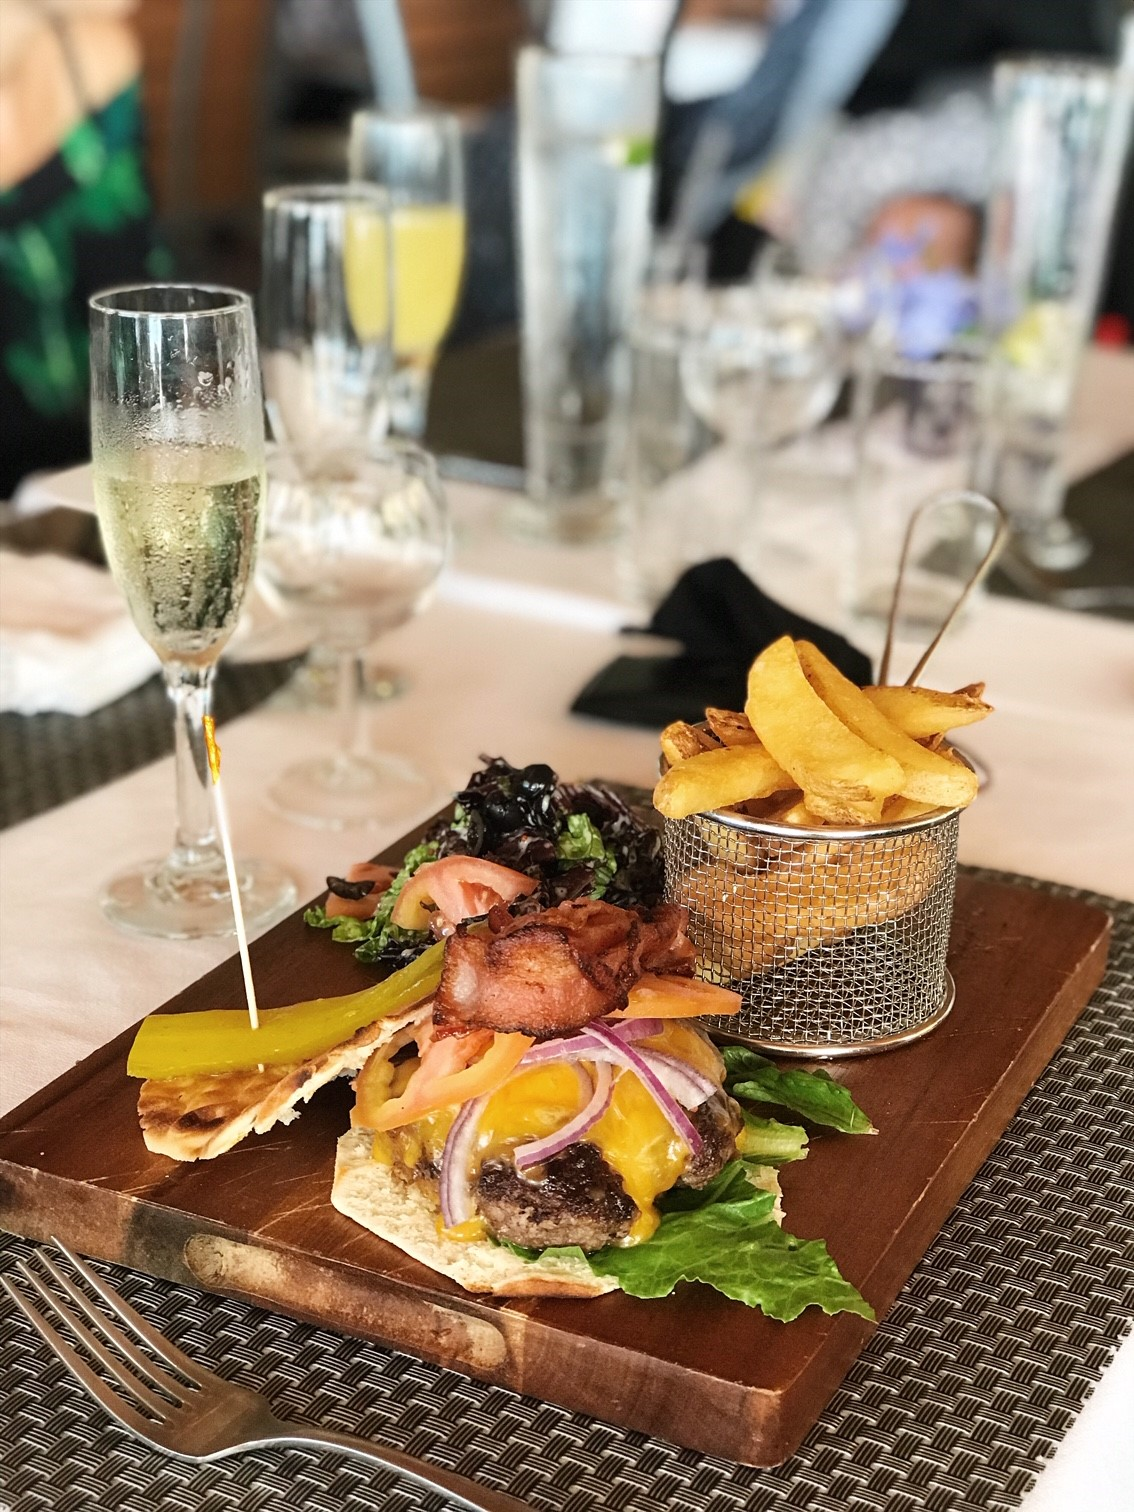 Brunch at the Sugar Mill BVI - Juicy Breakfast Burger